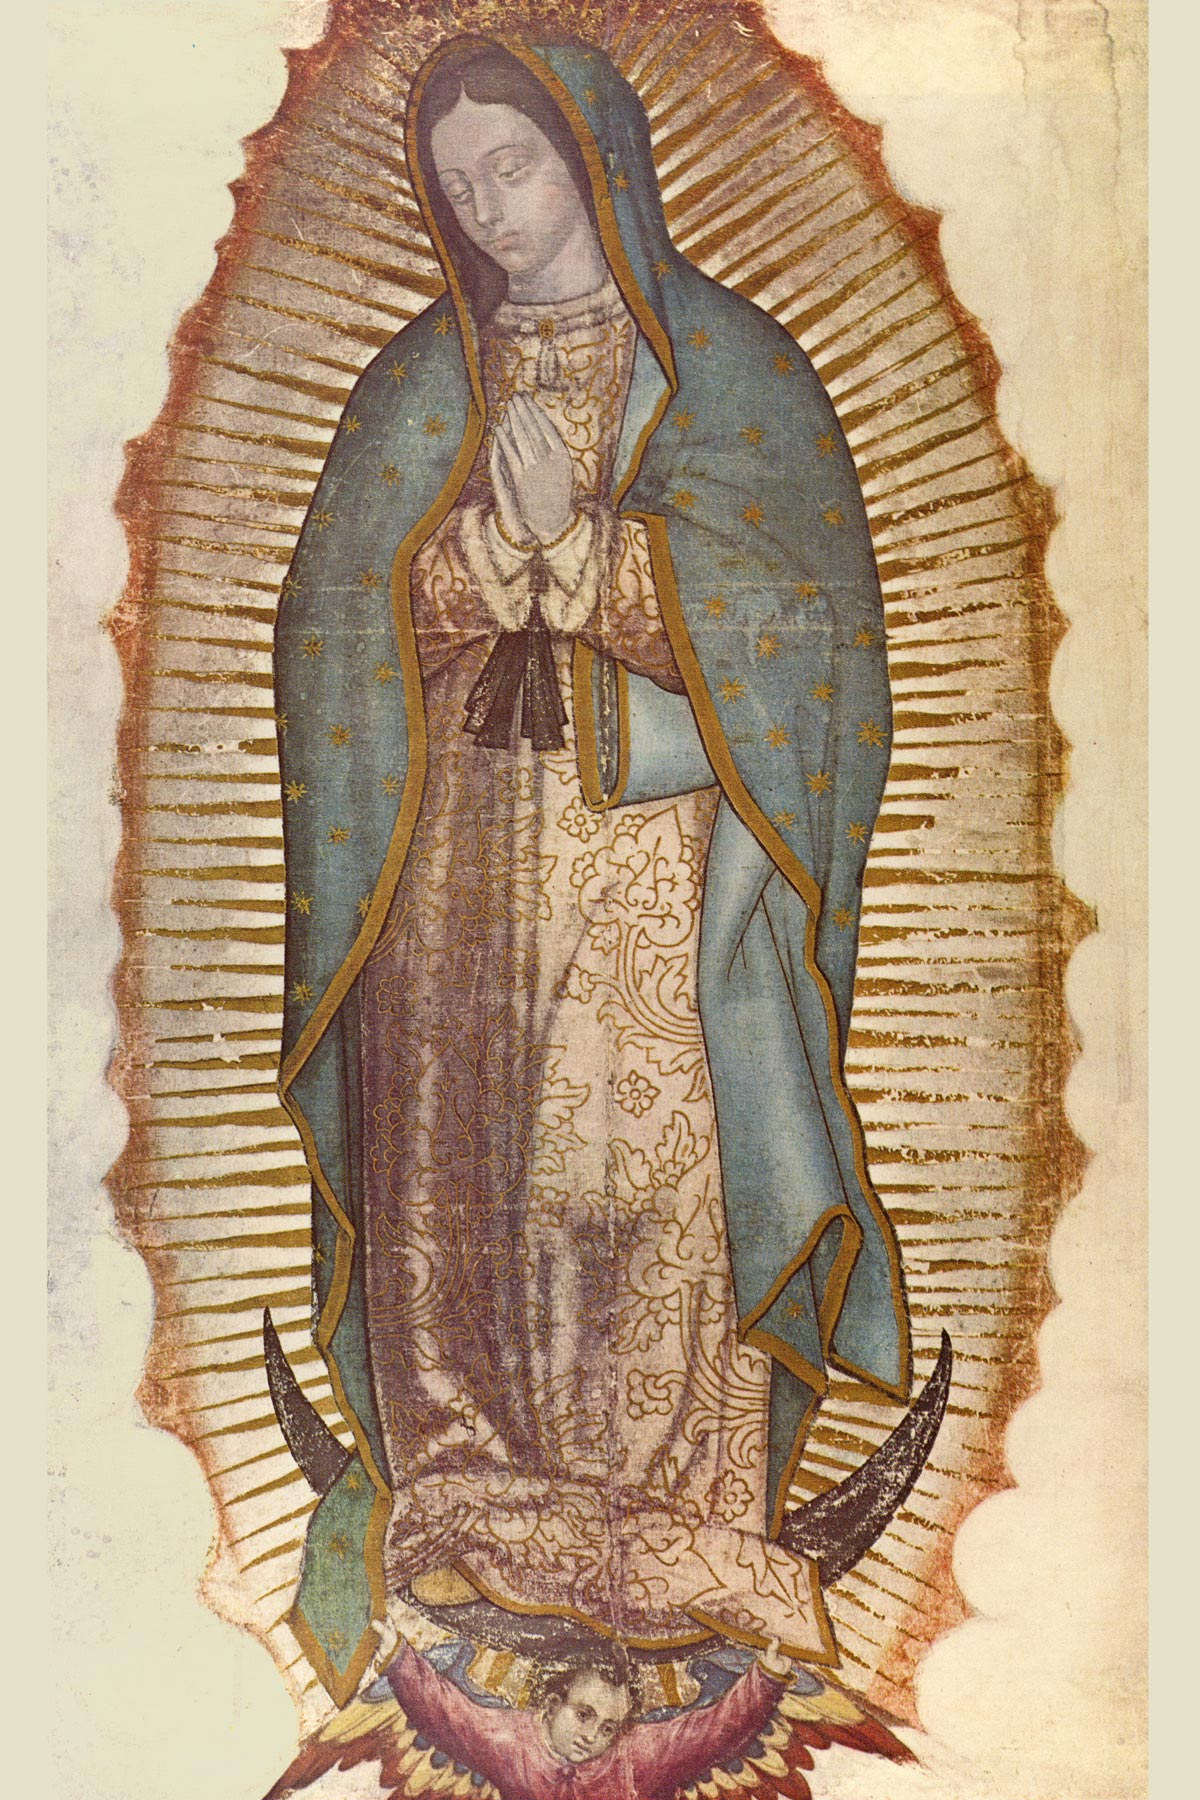 overview of our lady of guadalupe